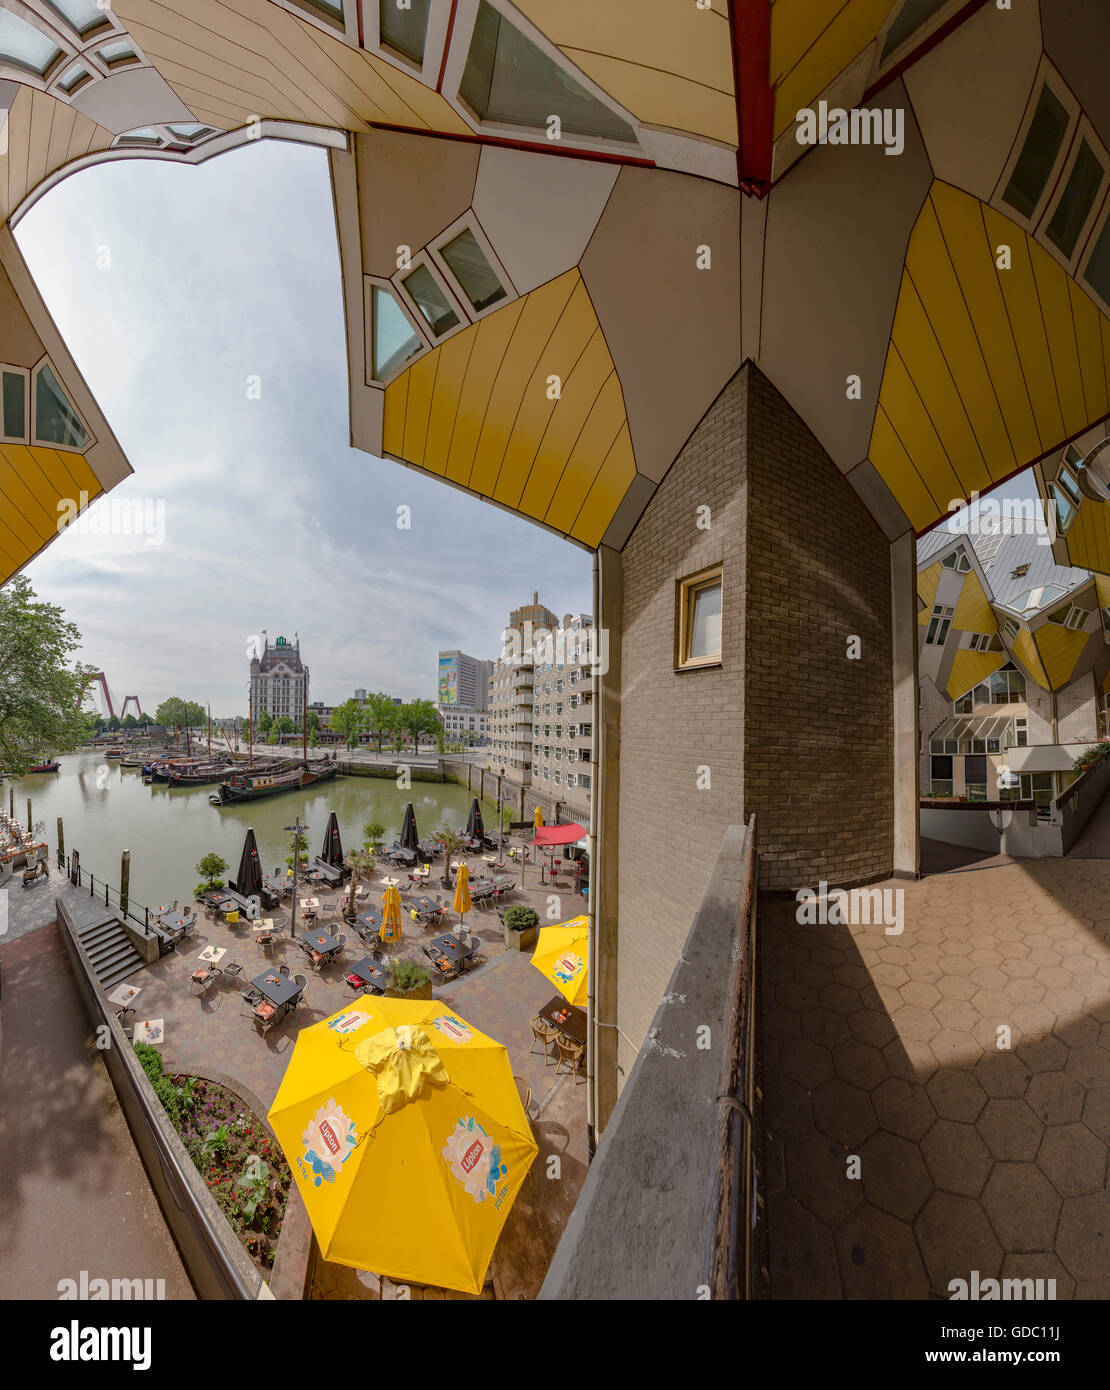 Rotterdam,Cube houses,the Old Harbour,the White Hous,the William bridge - Stock Image